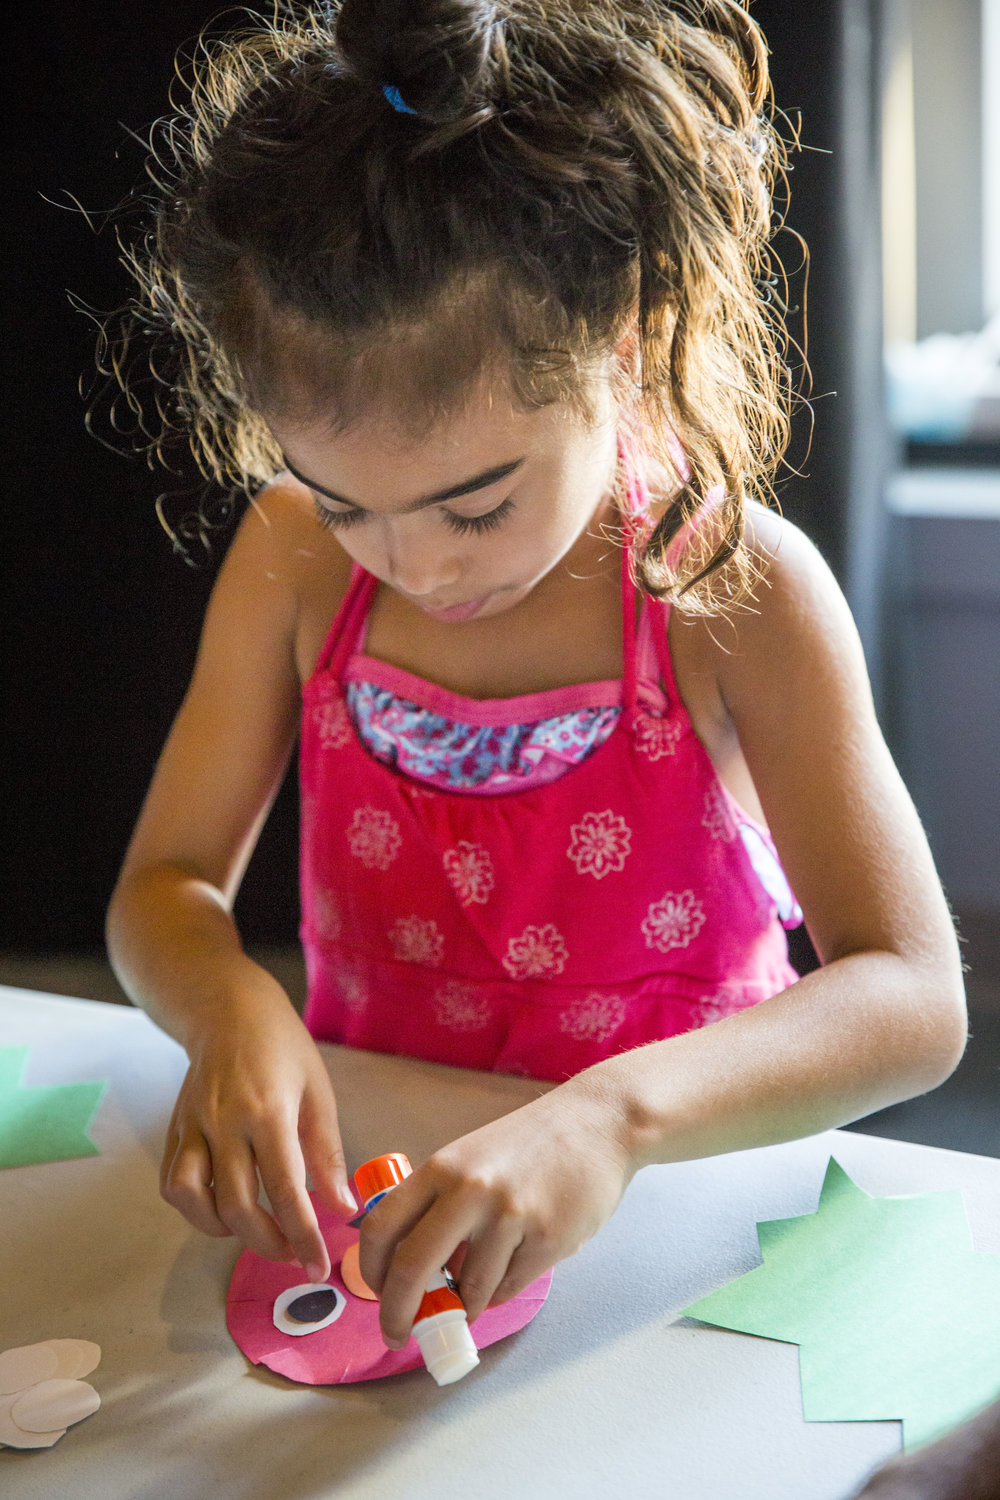 A young kiddo in pink using a glue stick to make some art